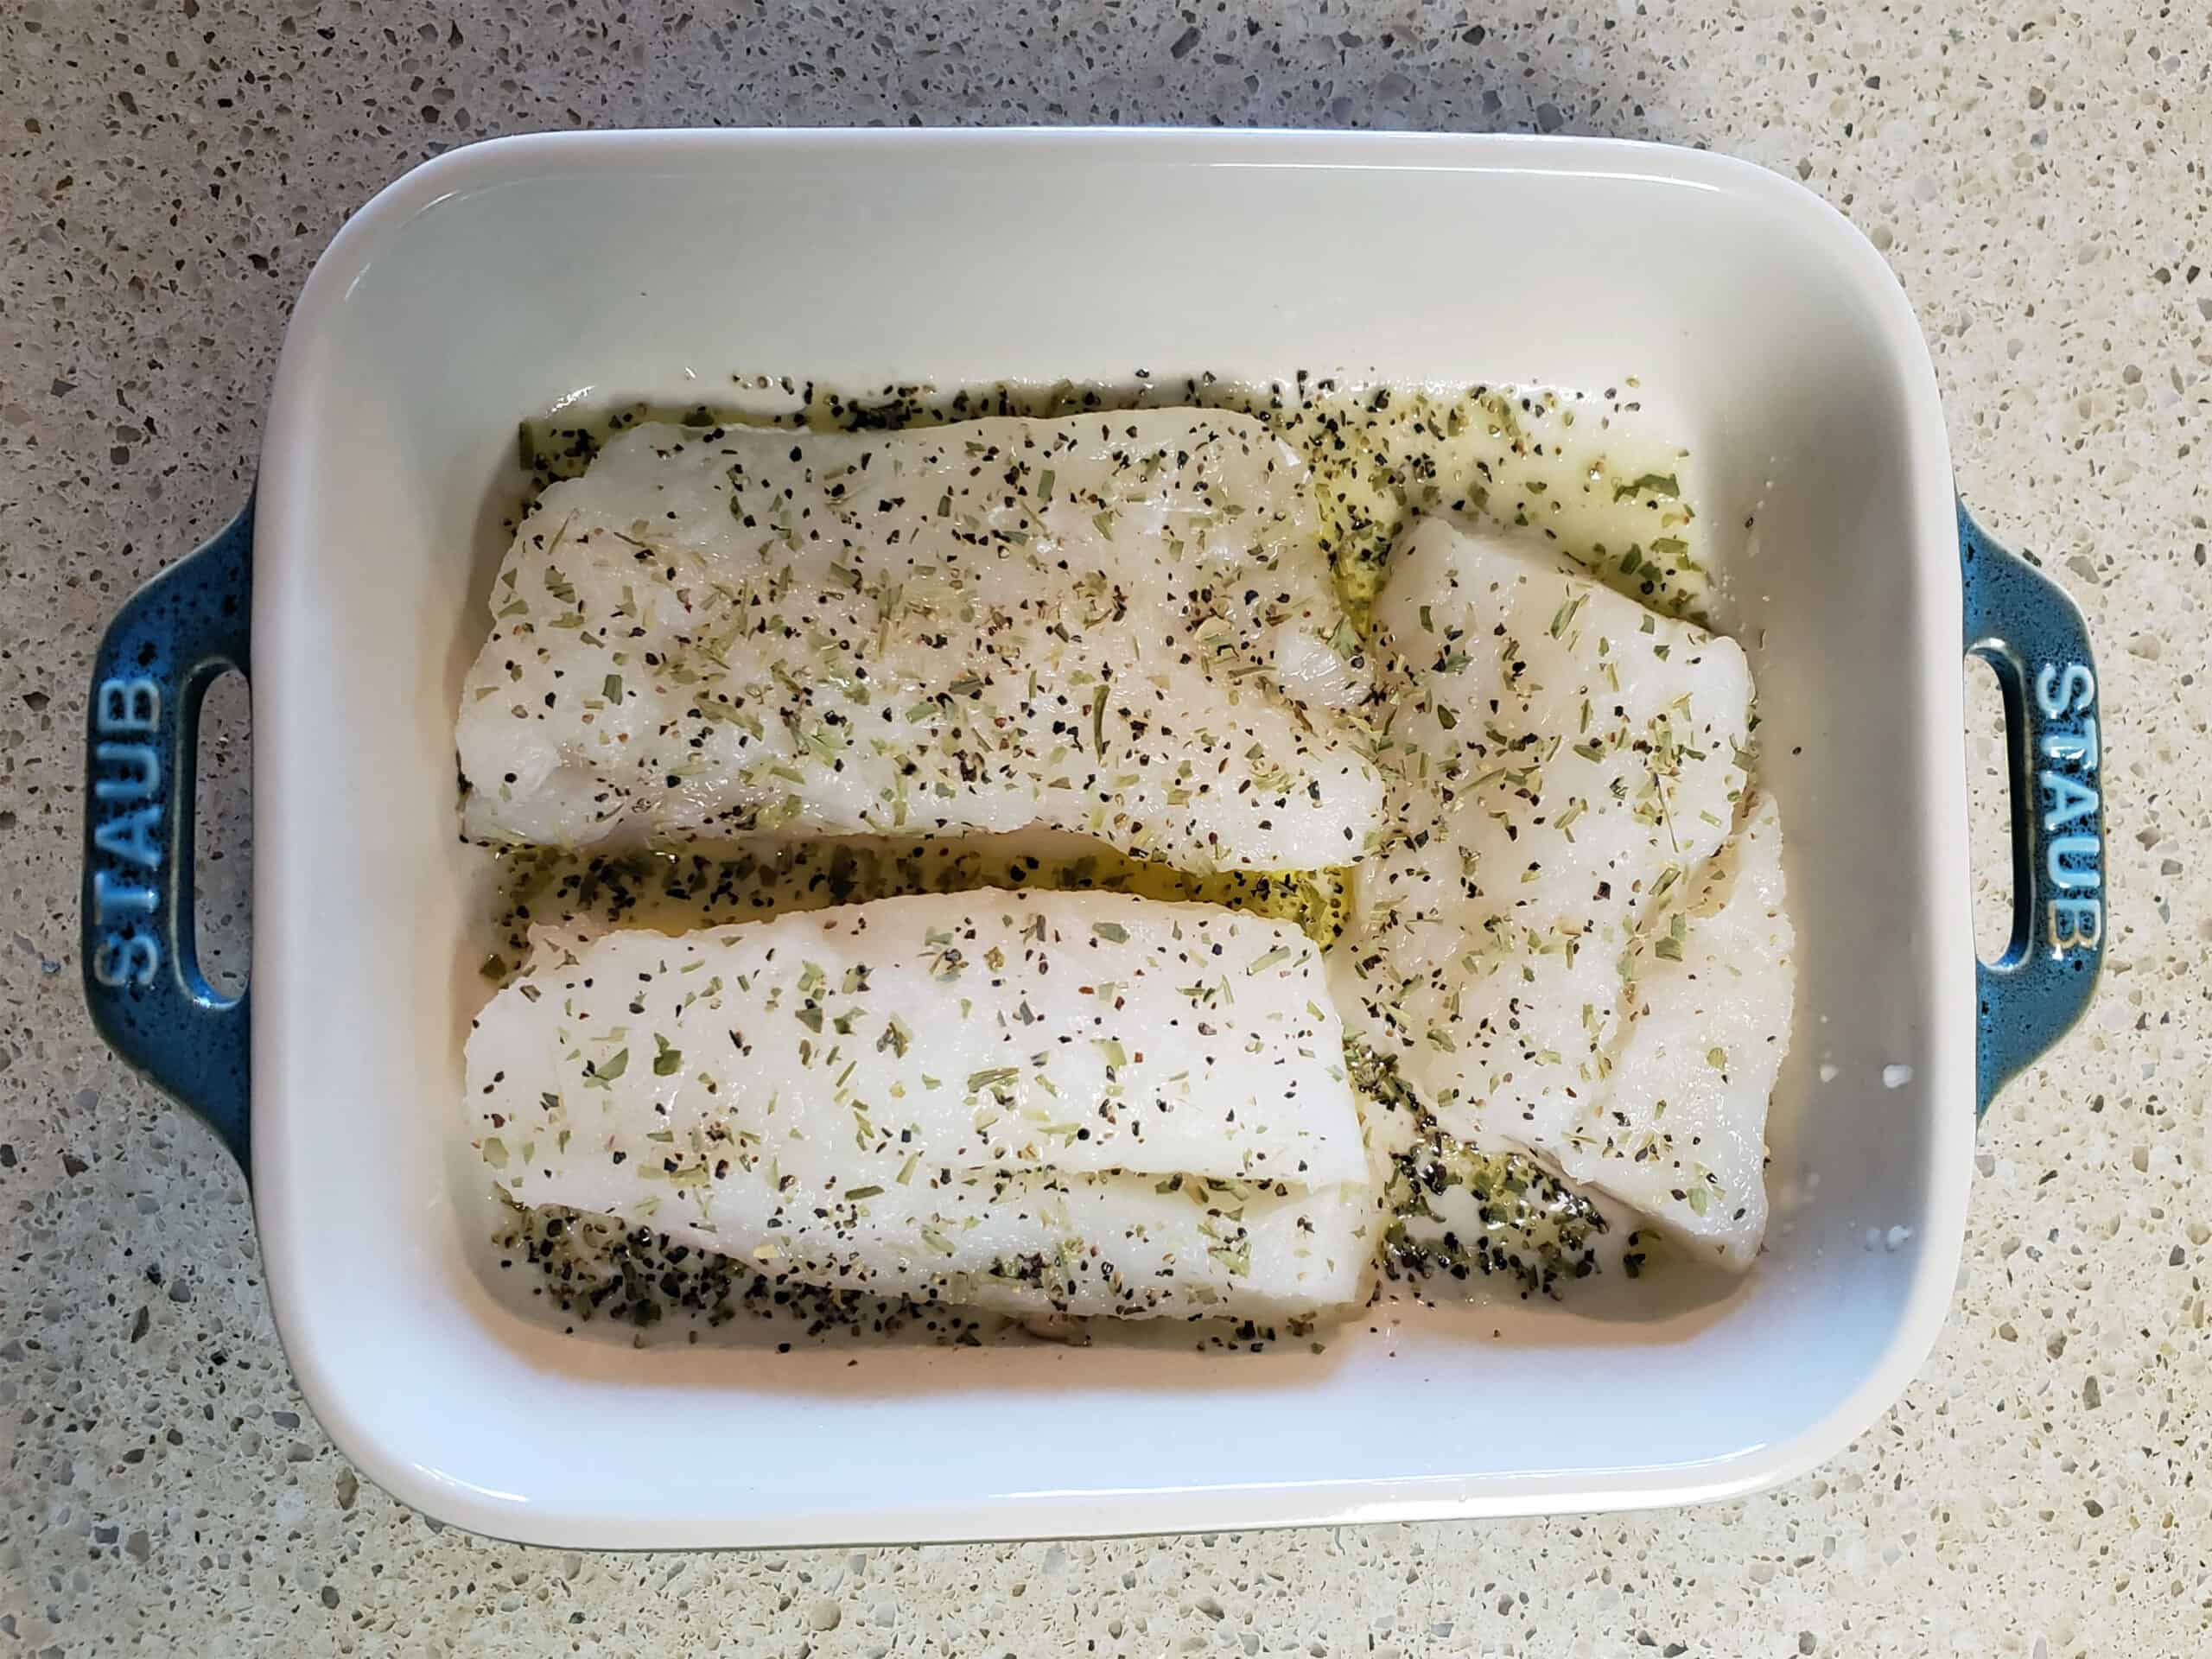 Seasoned tilapia fillets in baking dish